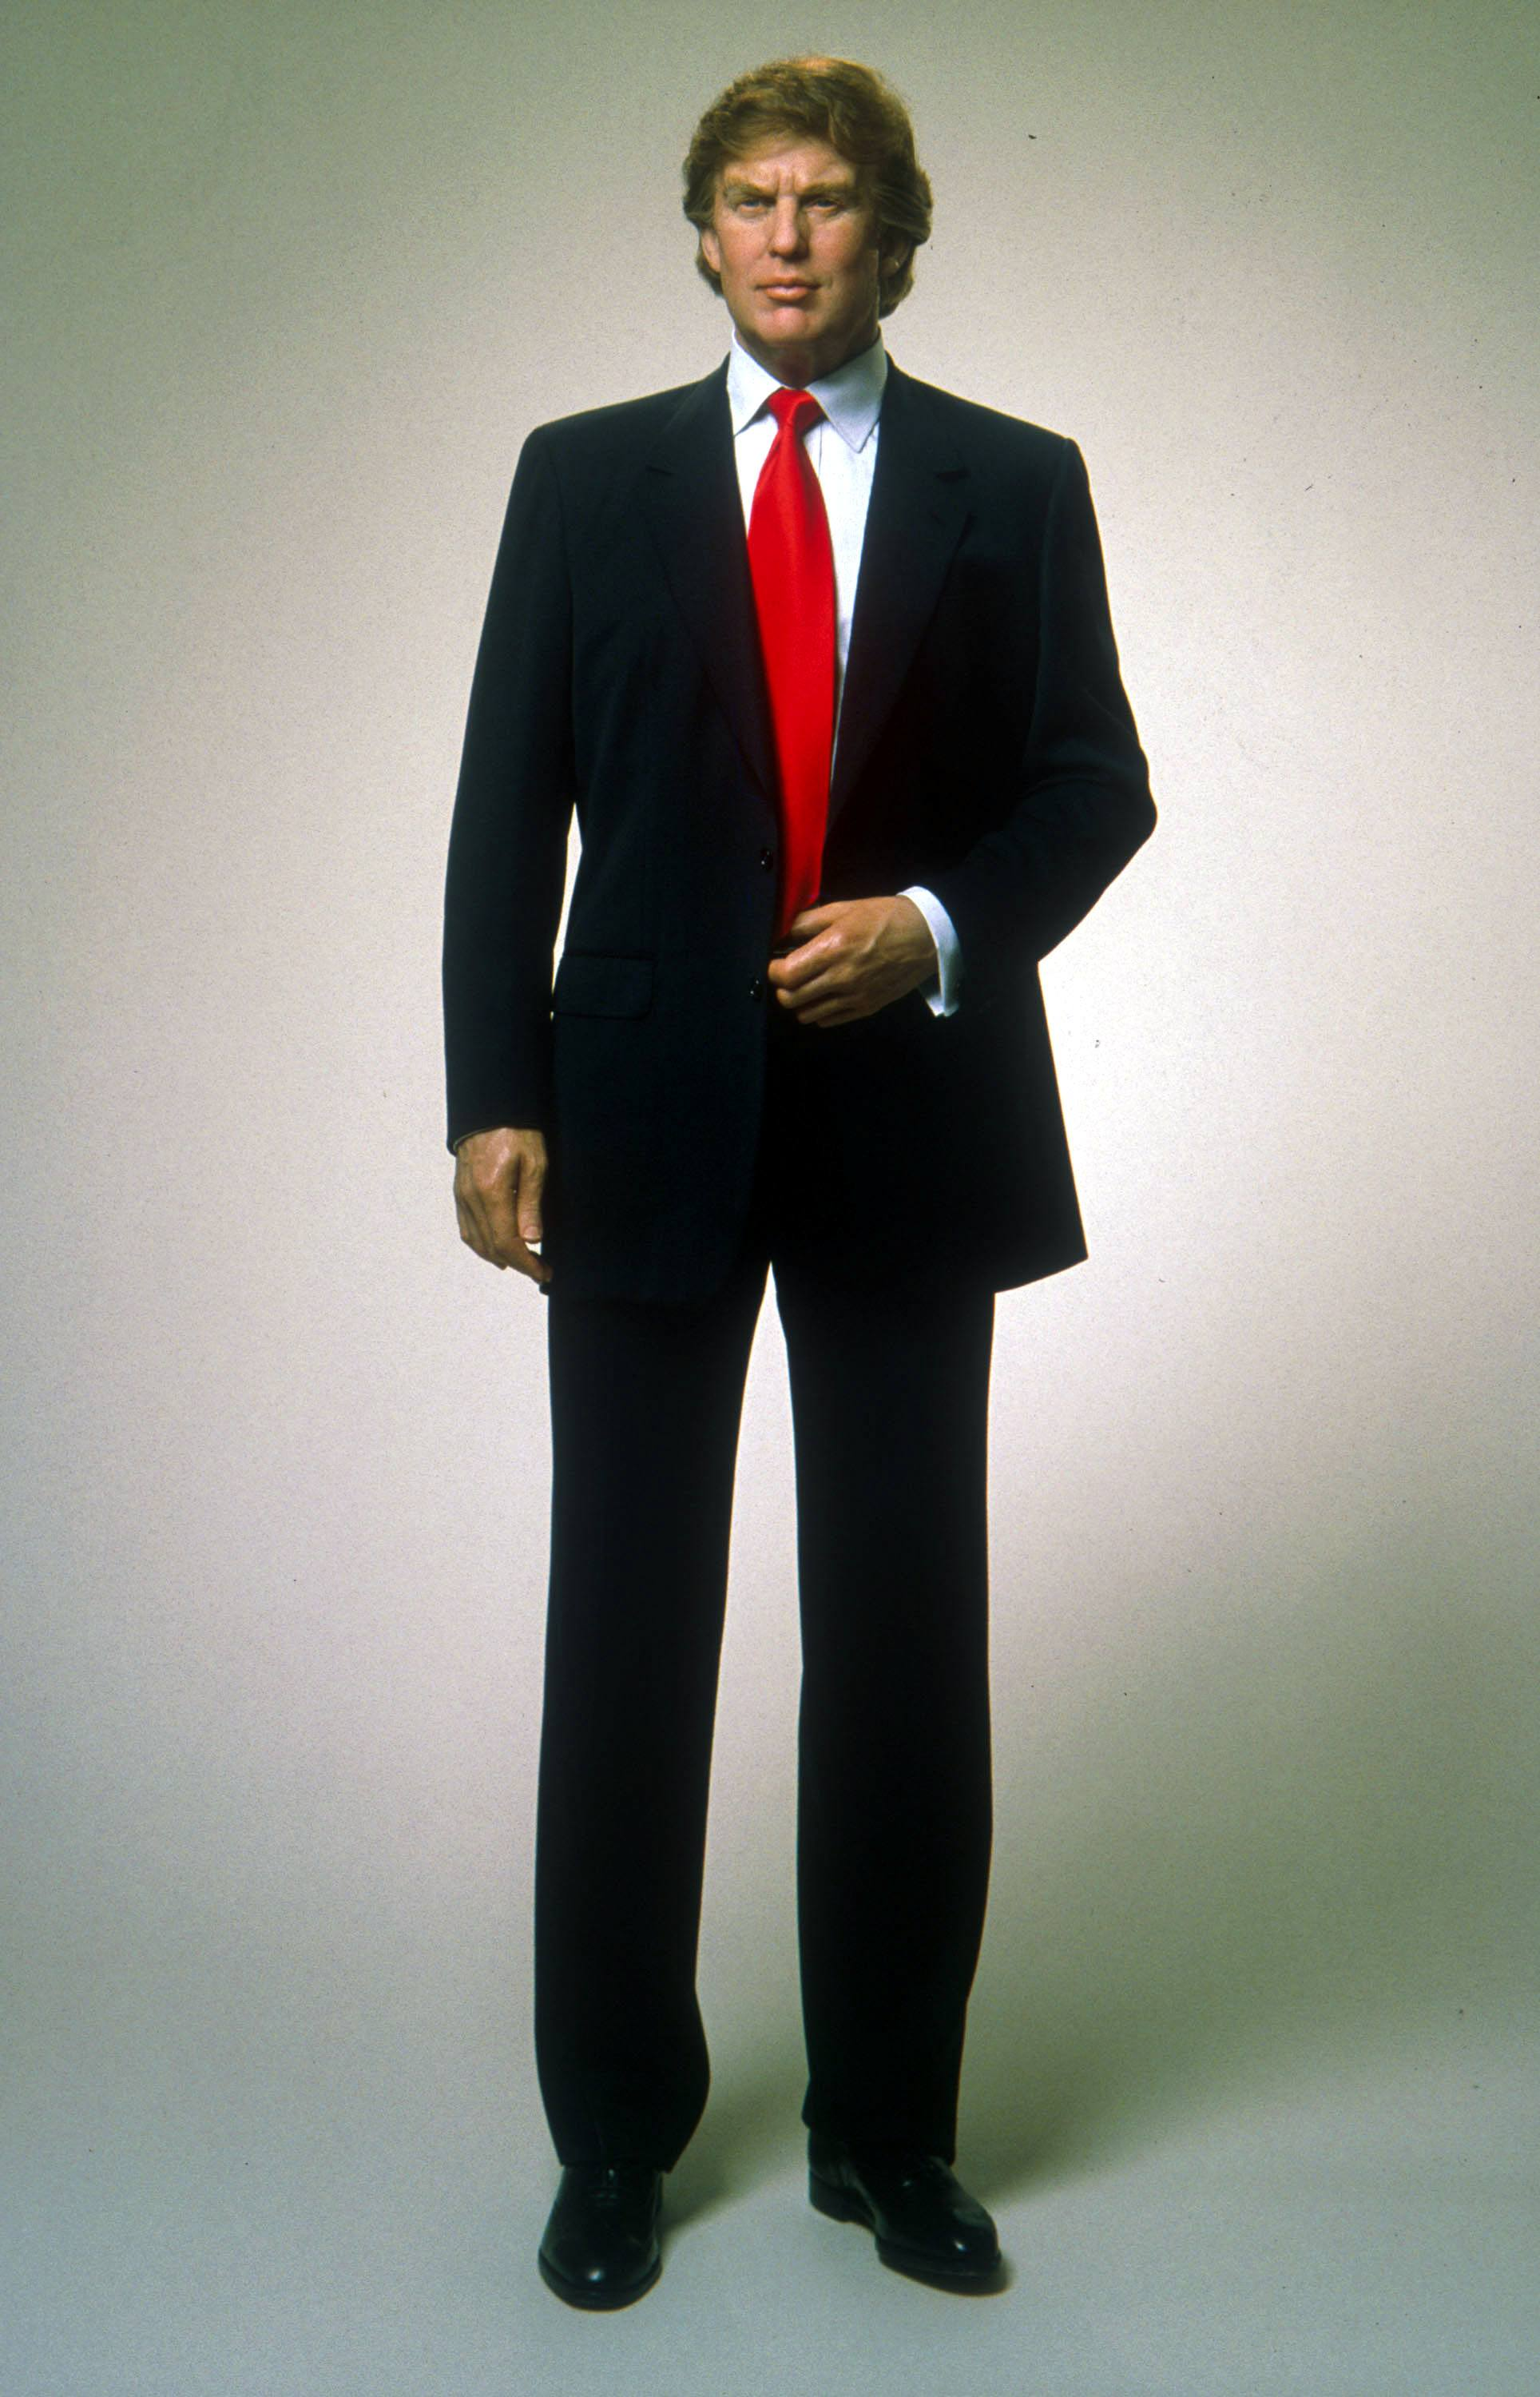 Wax statue of Donald Trump